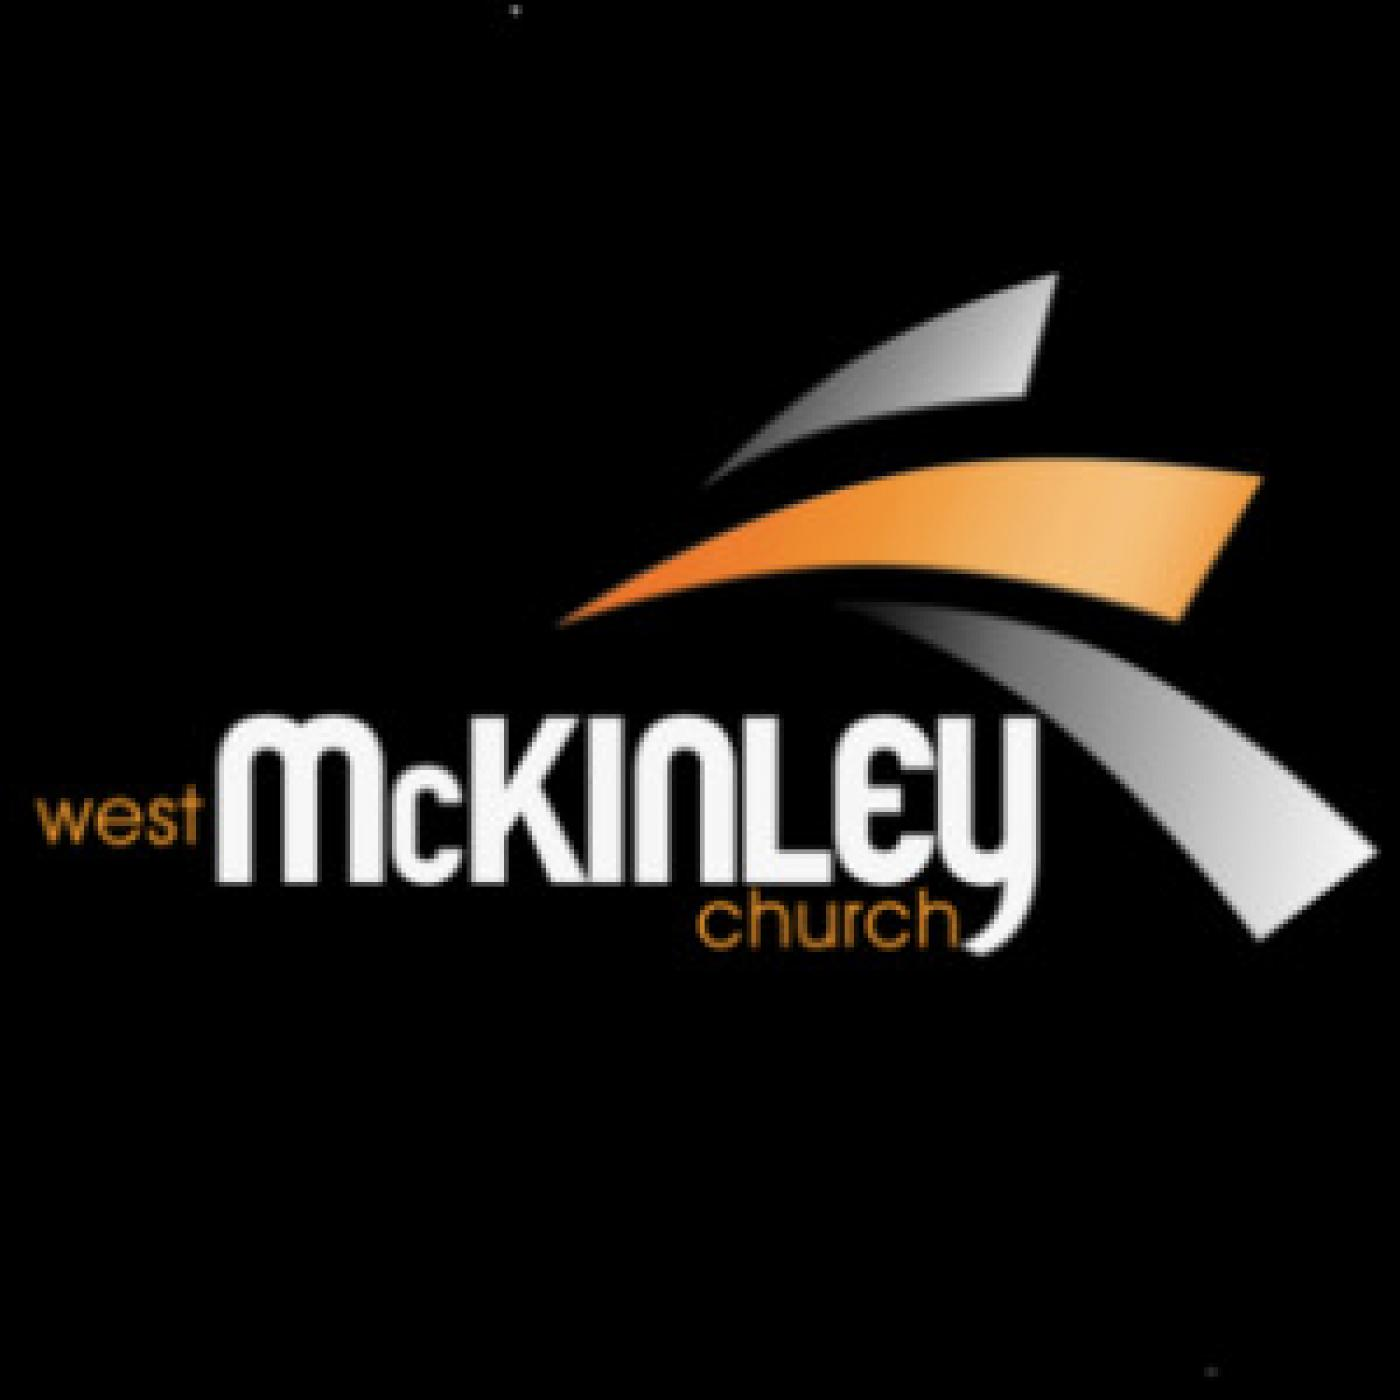 West McKinley Church